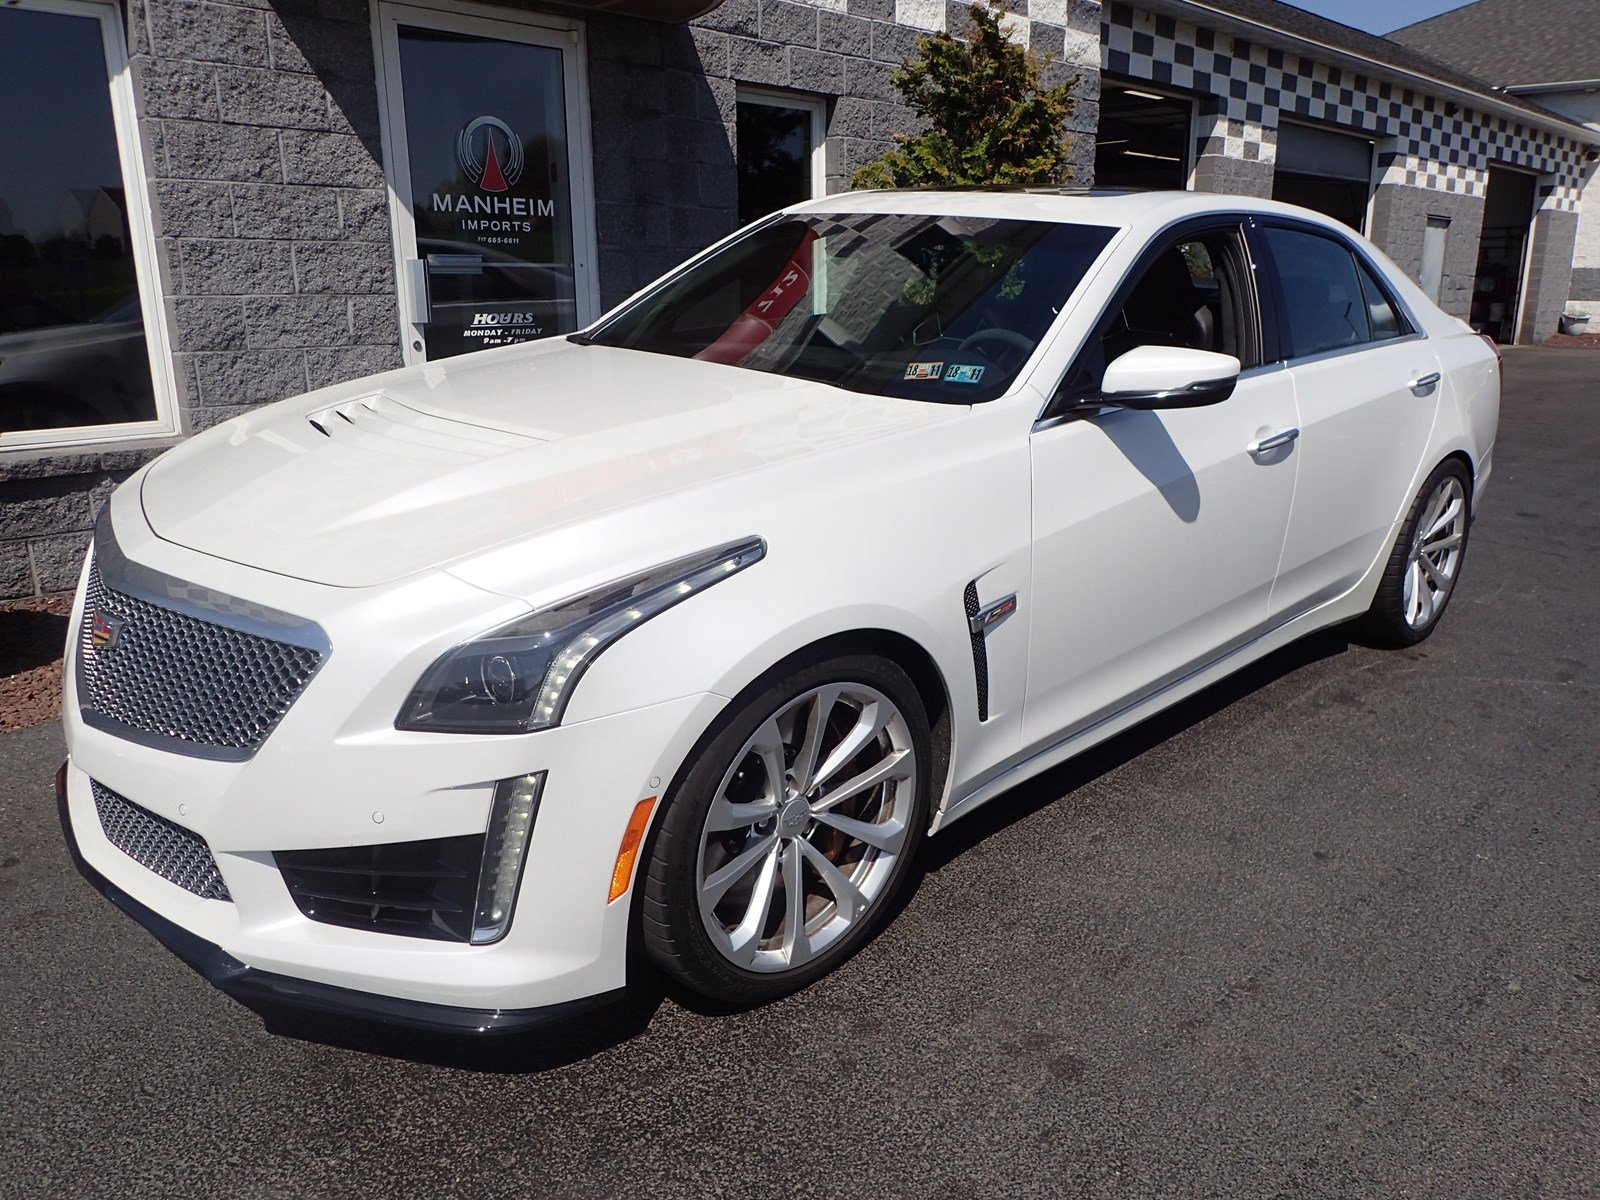 mazda bommarito awd in luxury mo saint peters used of collection sedan cts cadillac